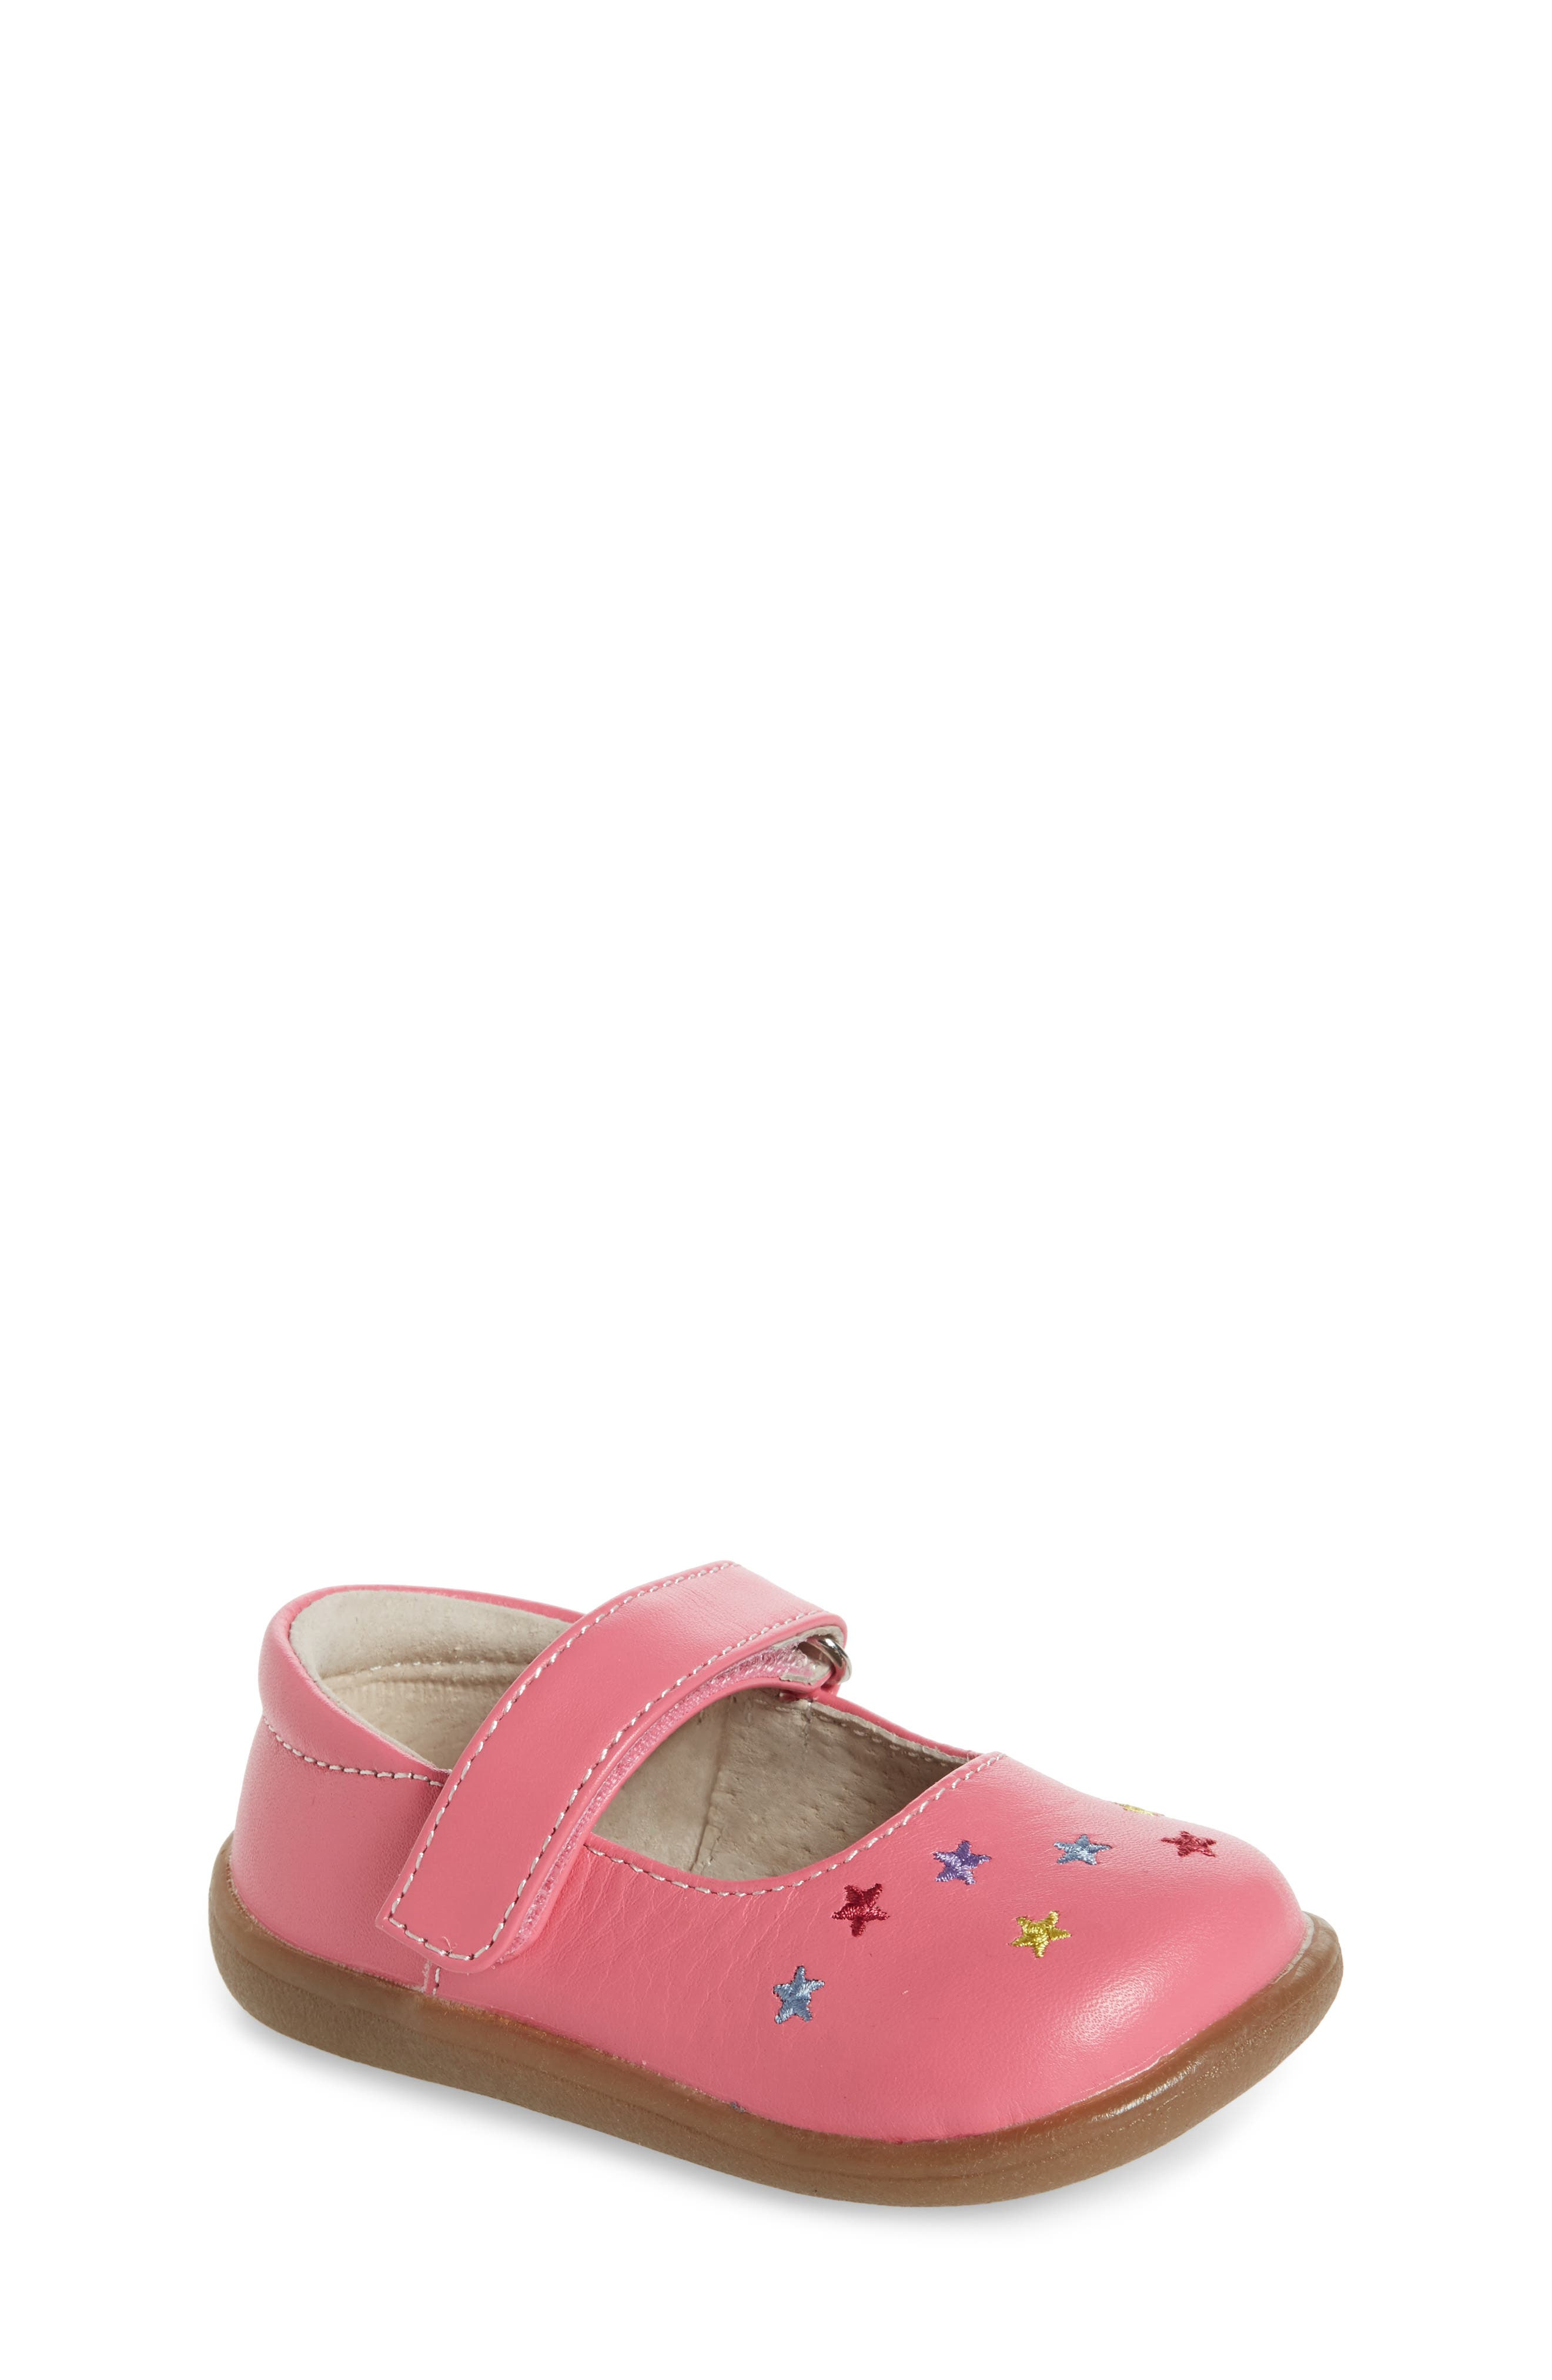 See Kai Run Harriett Mary Jane Flat (Baby, Walker, Toddler & Little Kid)